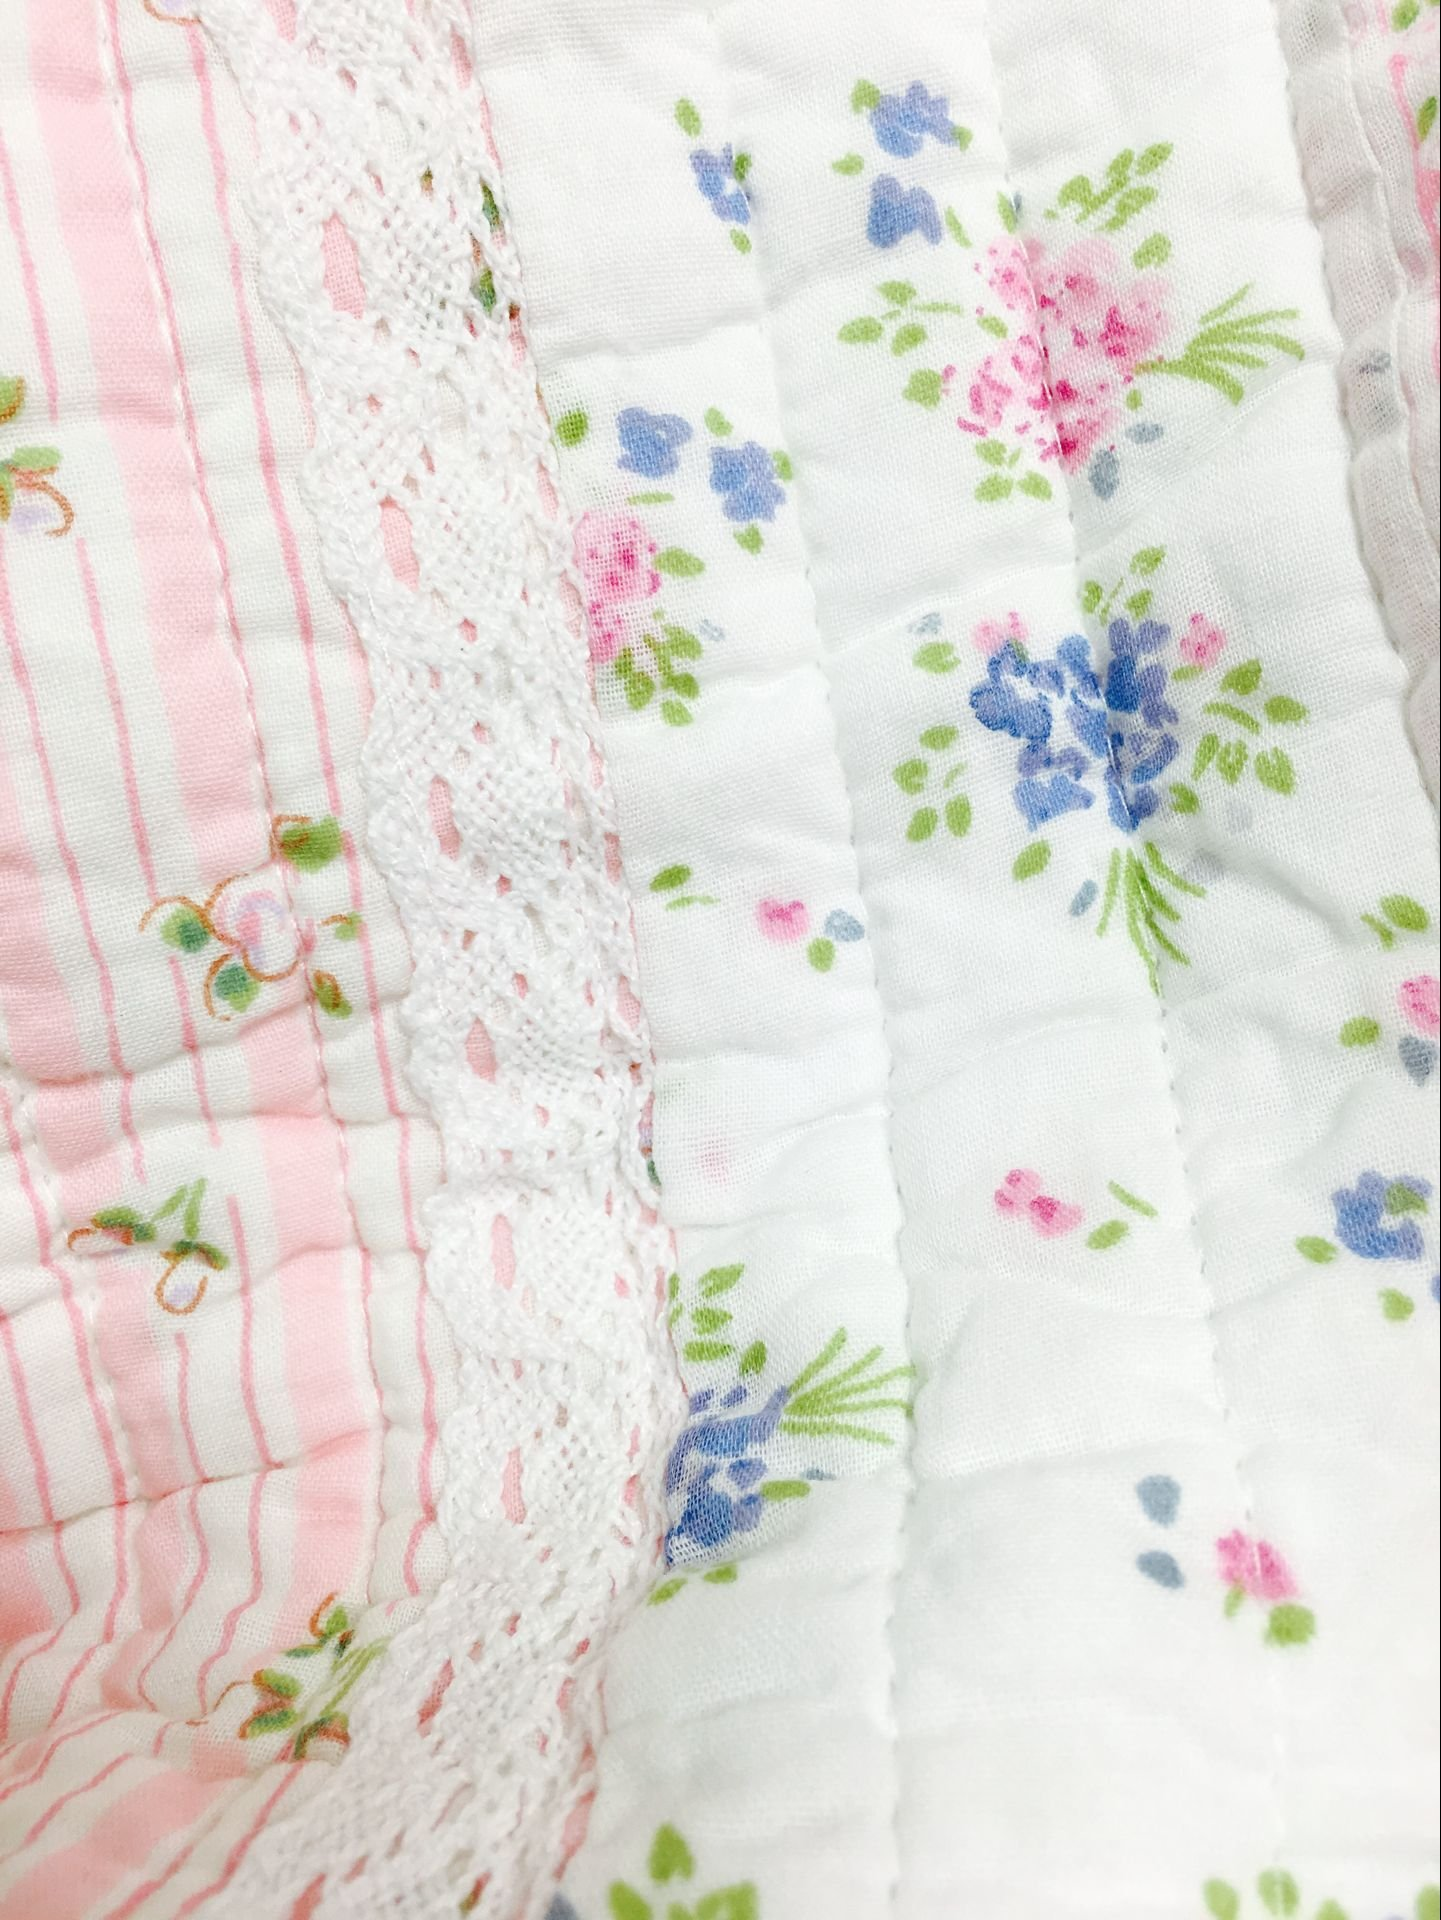 Cozy Line Home Fashions Pink Rose Romantic Chic Lace Bedding Quilt Set, Floral Flower Printed 3D Stripe 100% COTTON Reversible Coverlet Bedspread Gifts for Girls Women (Queen - 3 piece) by Cozy Line Home Fashions (Image #2)